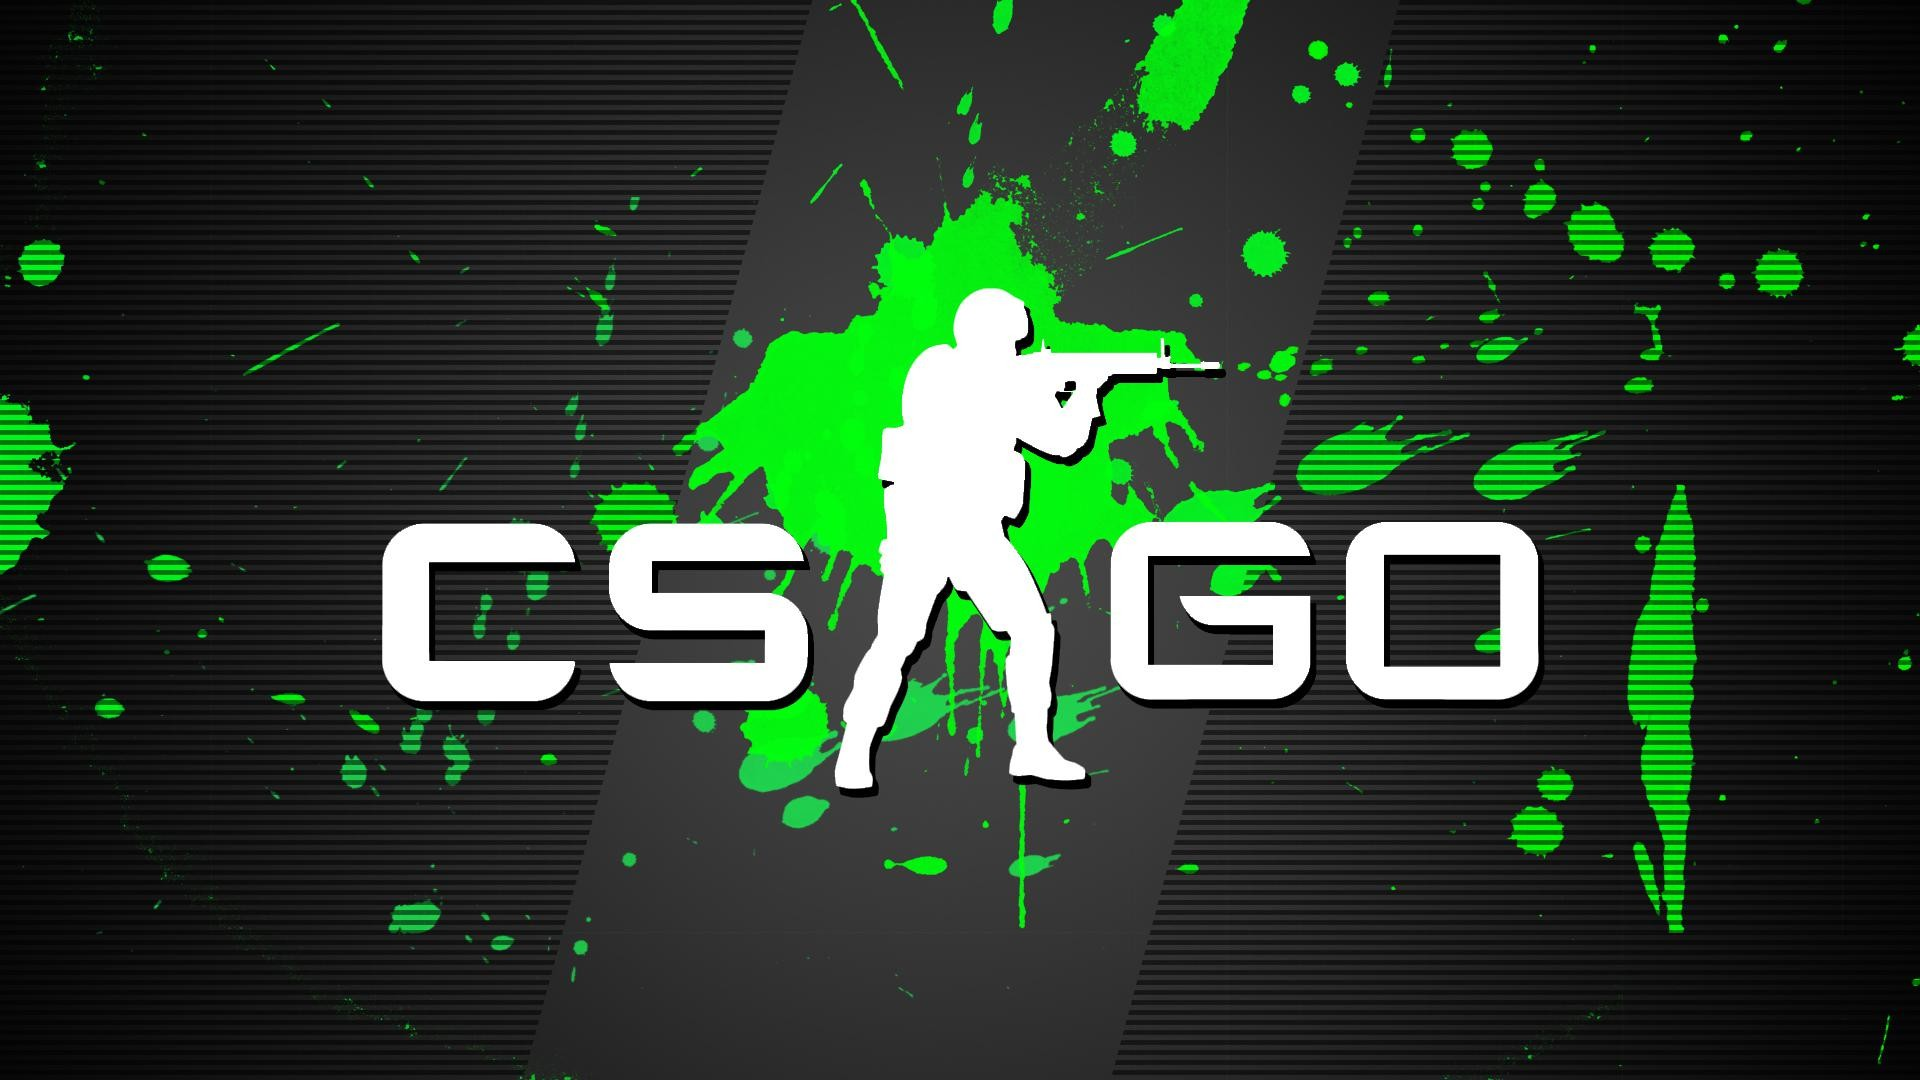 Counter-Strike: Global Offensive (CS Go) is a team-based action